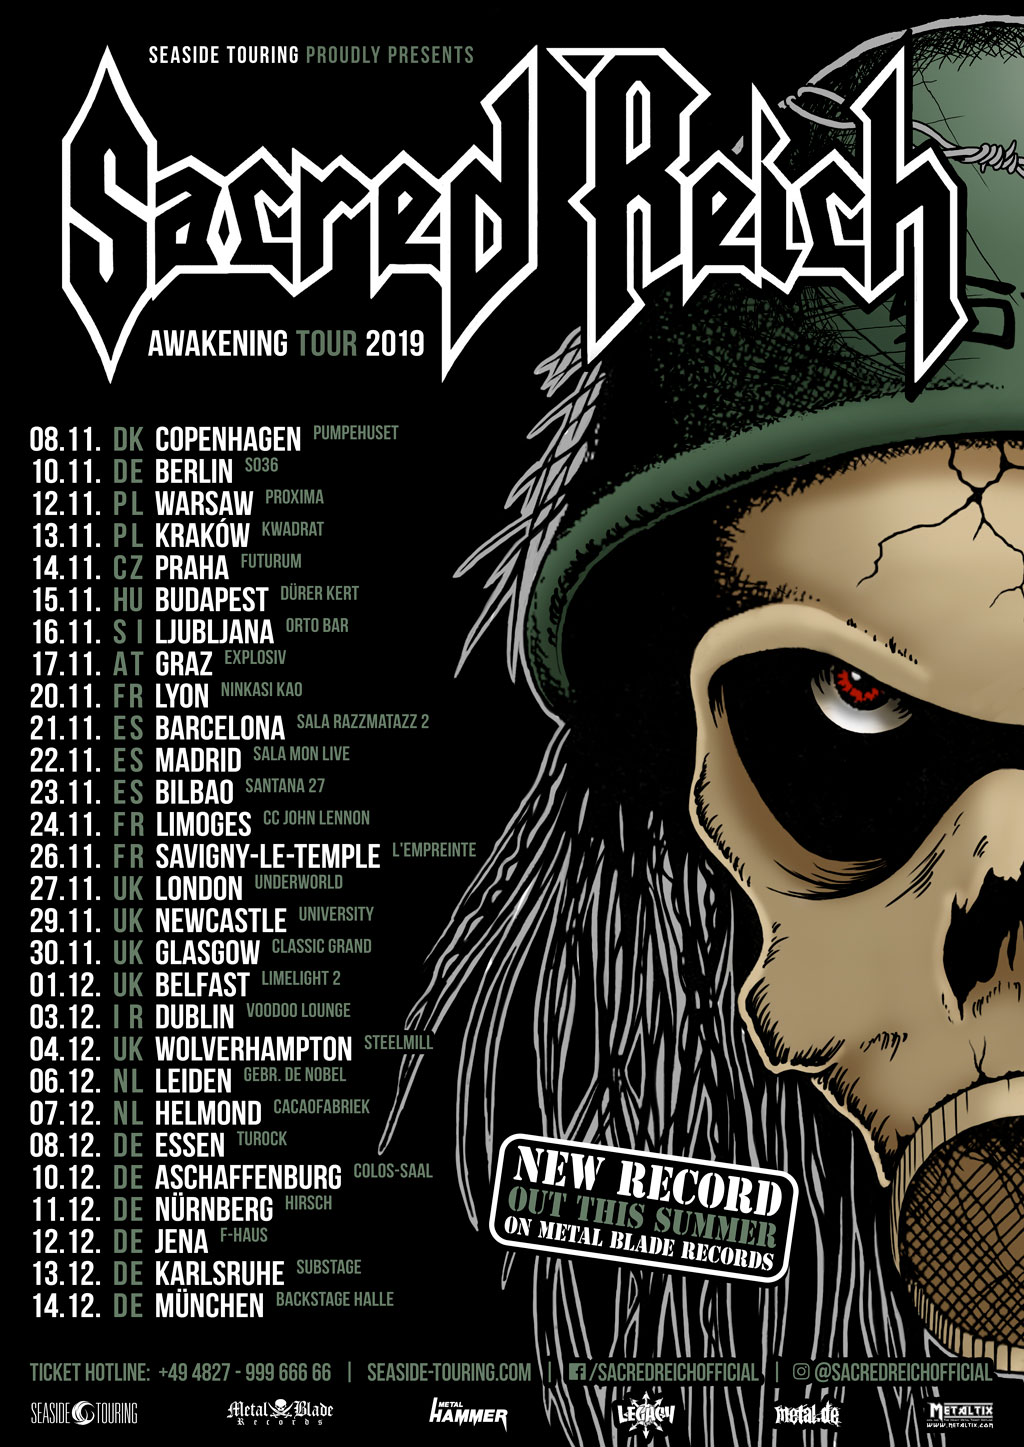 sst_sacred-reich_2019-2_poster_a1_008_preview.jpg